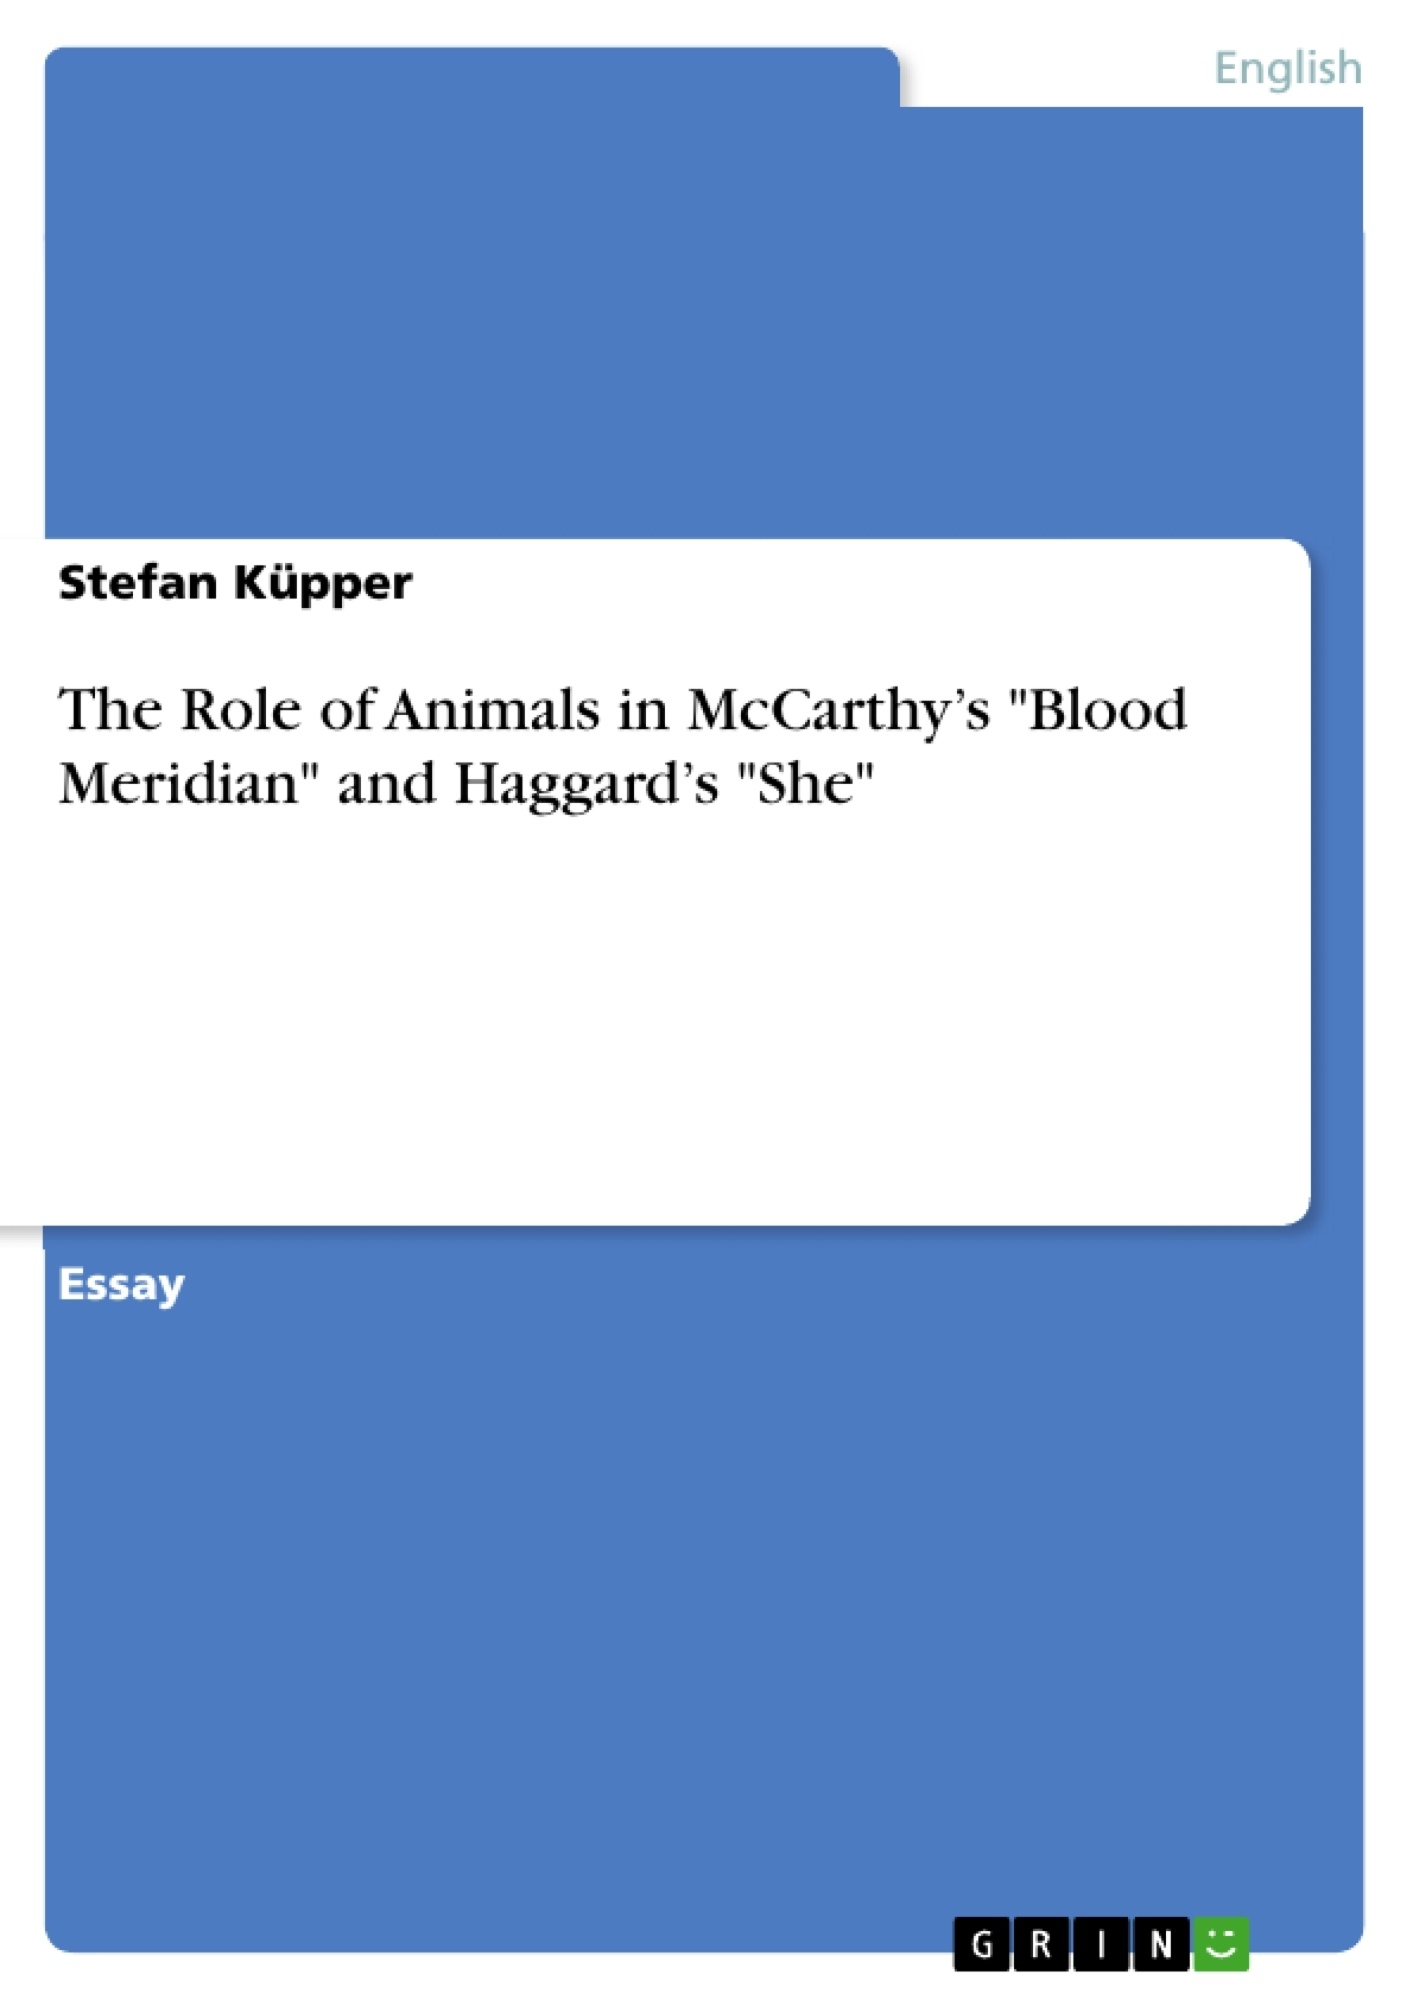 """Title: The Role of Animals in McCarthy's """"Blood Meridian"""" and Haggard's """"She"""""""